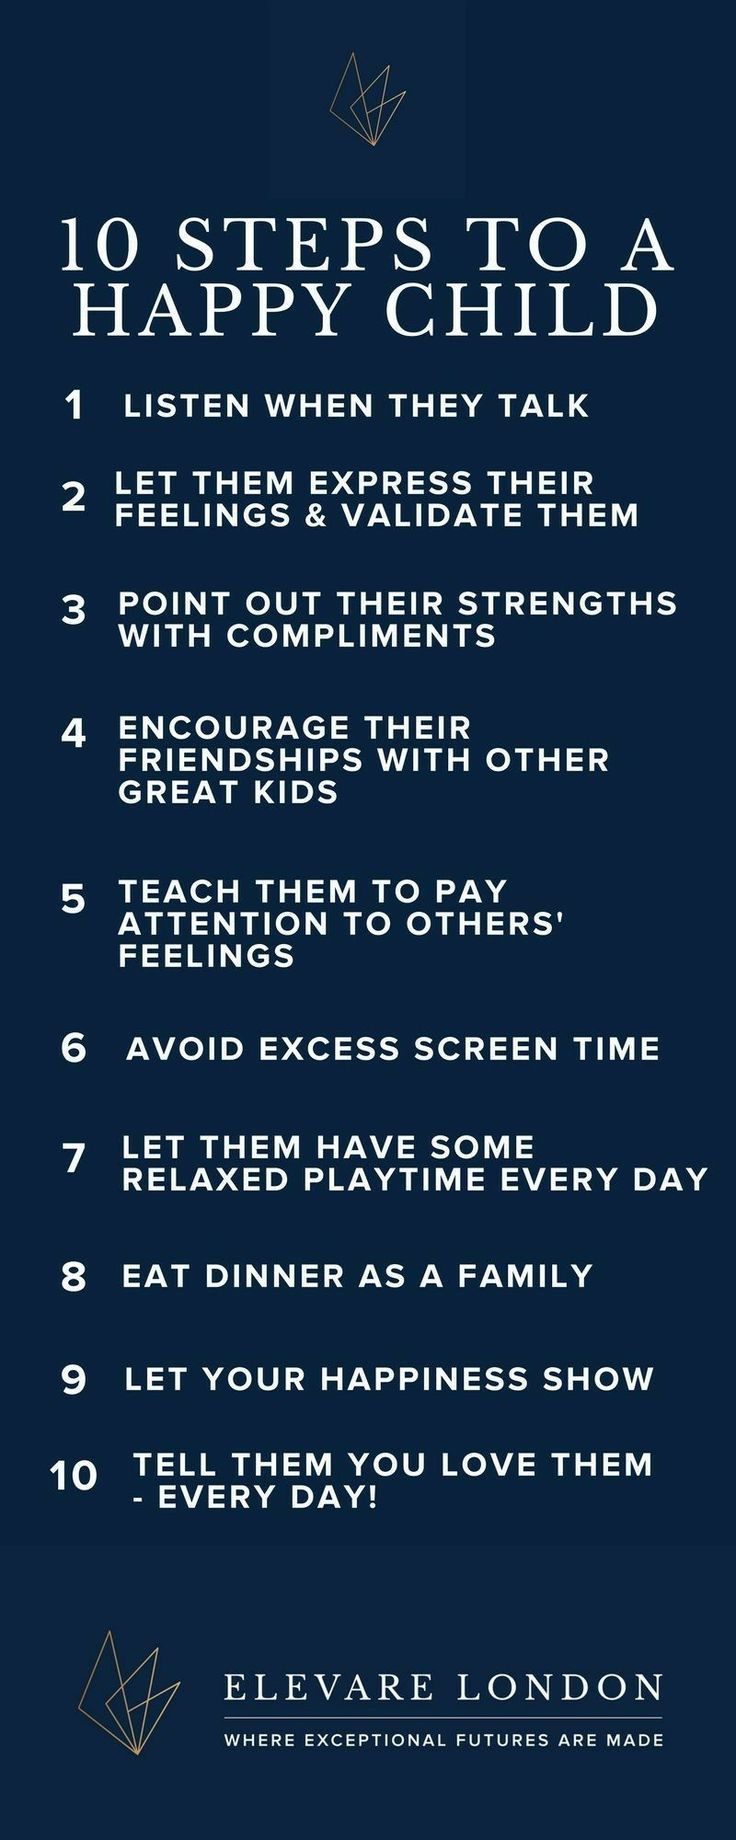 10 Steps To A Positive Childhood Mom Quotes Daughter Truths Home Hilarious Hard Humor Mothers Ch Kids Parenting Parenting Skills Kids And Parenting